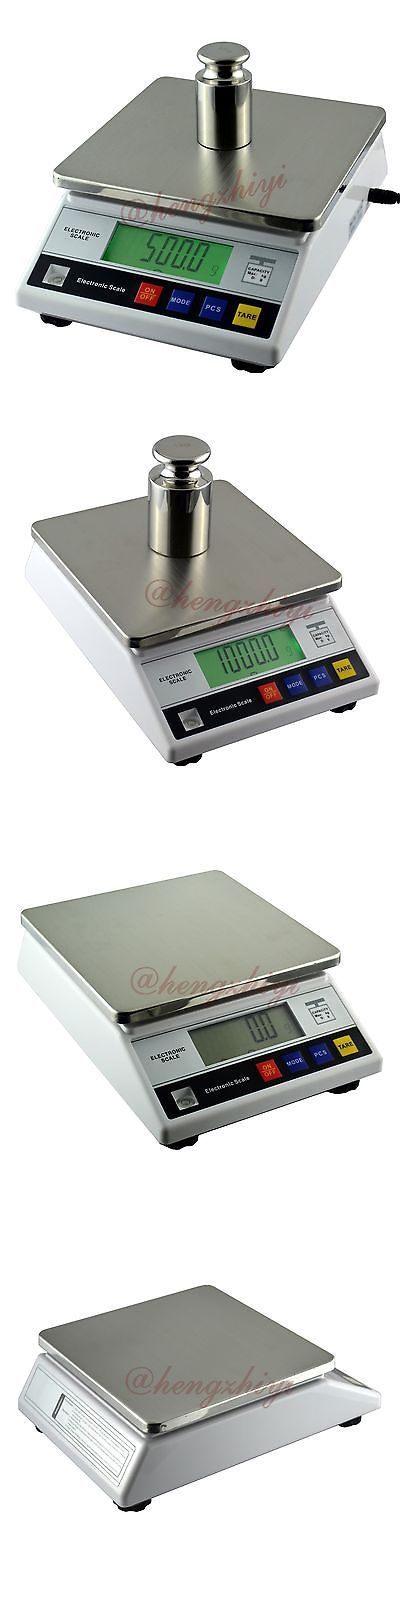 Pocket Digital Scales: 6Kg X 0.1G Digital Precision Lab Weighing Scale W Counting Table Top Balance BUY IT NOW ONLY: $48.0